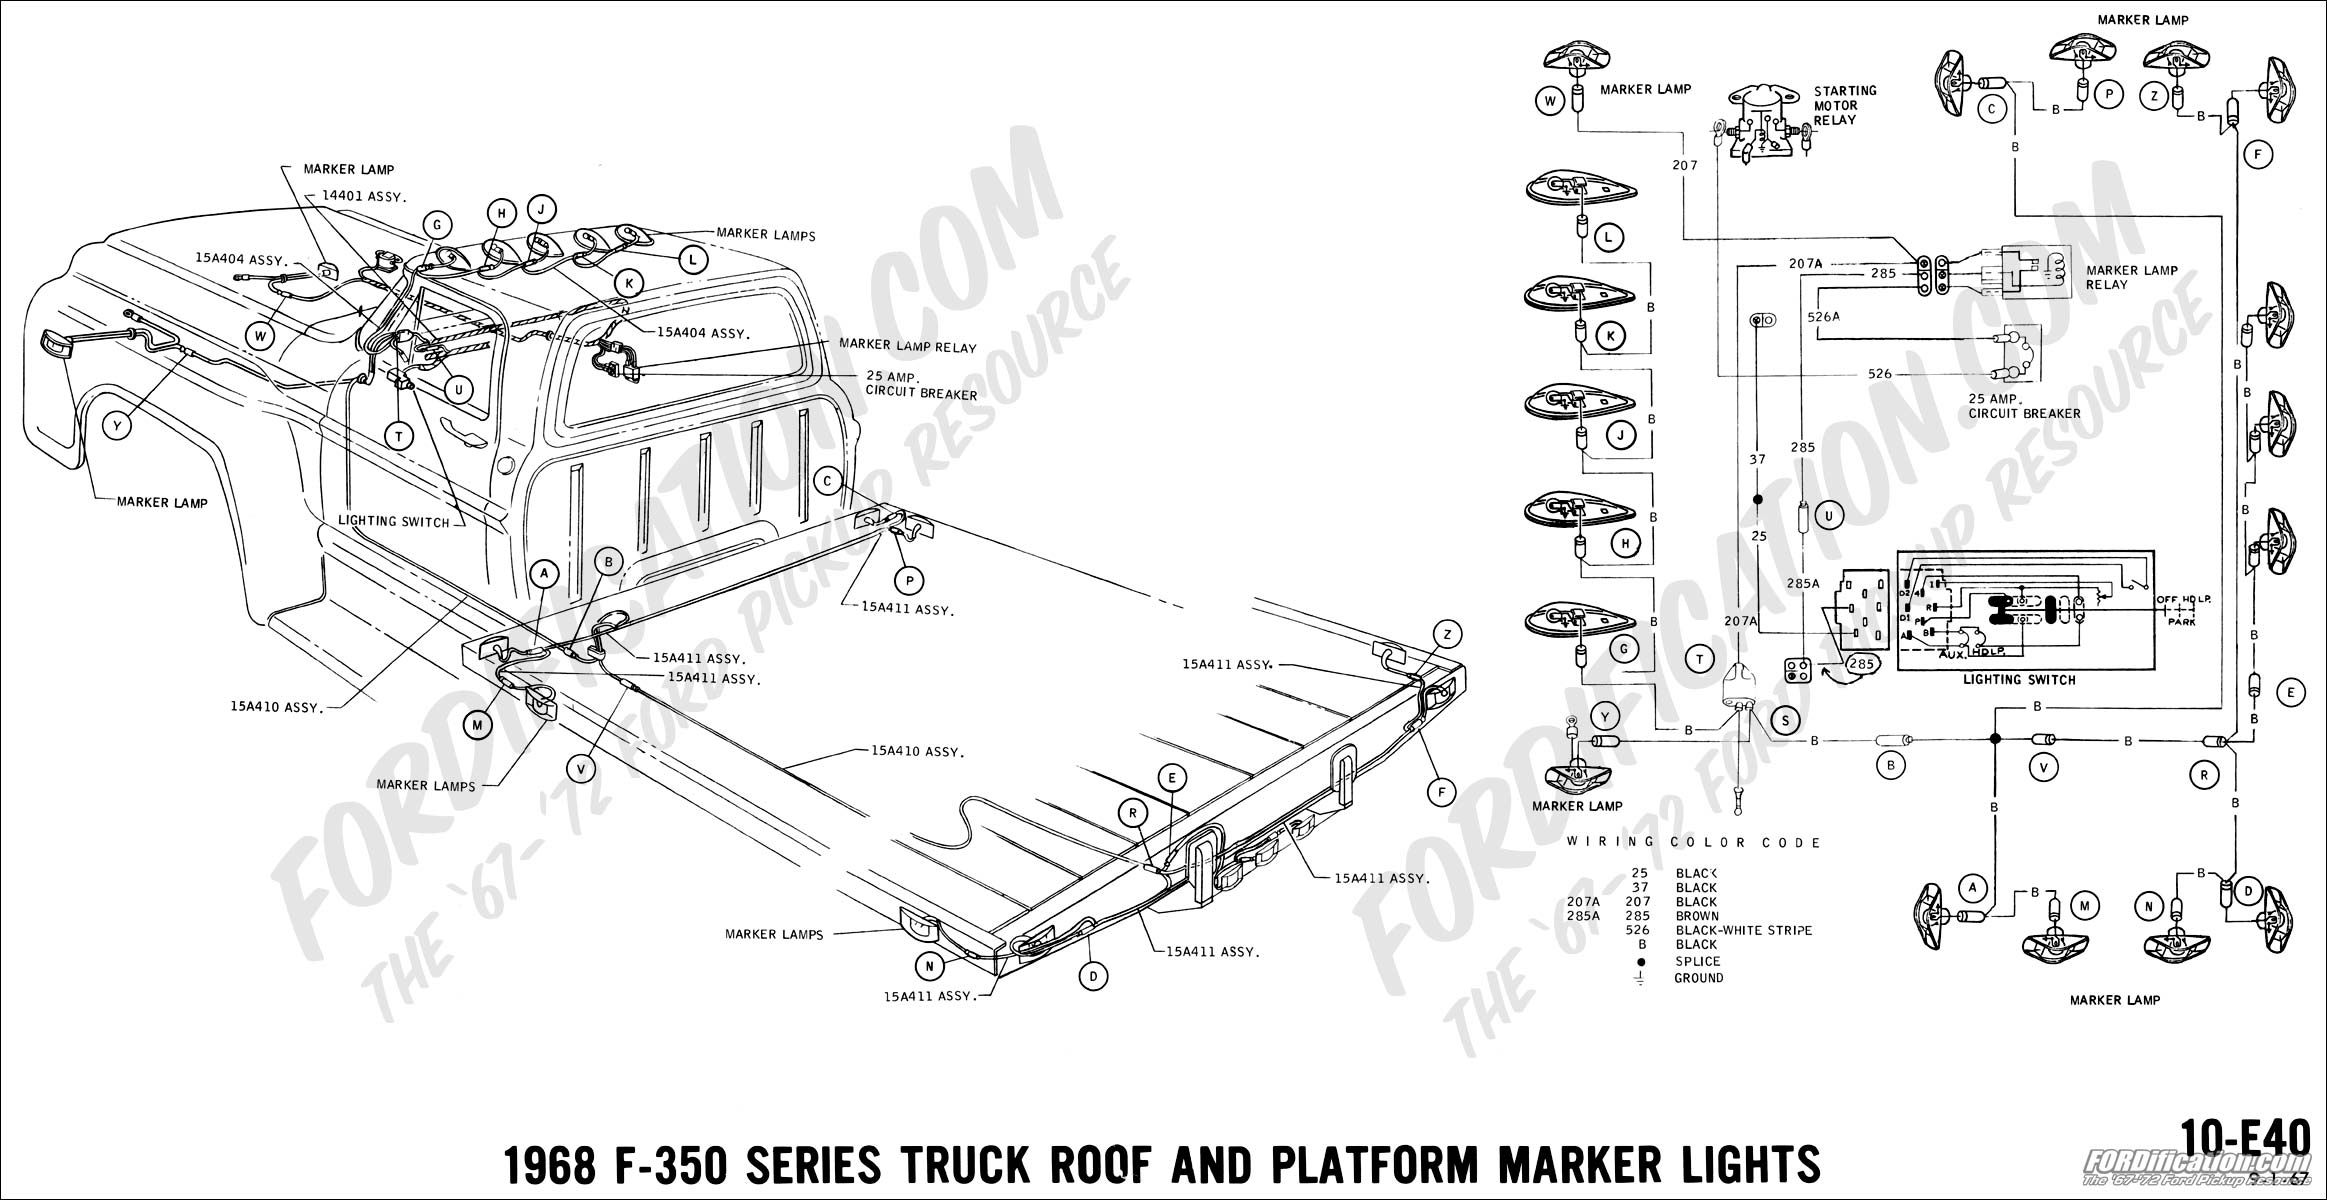 1968 F-350 roof and platform marker lights